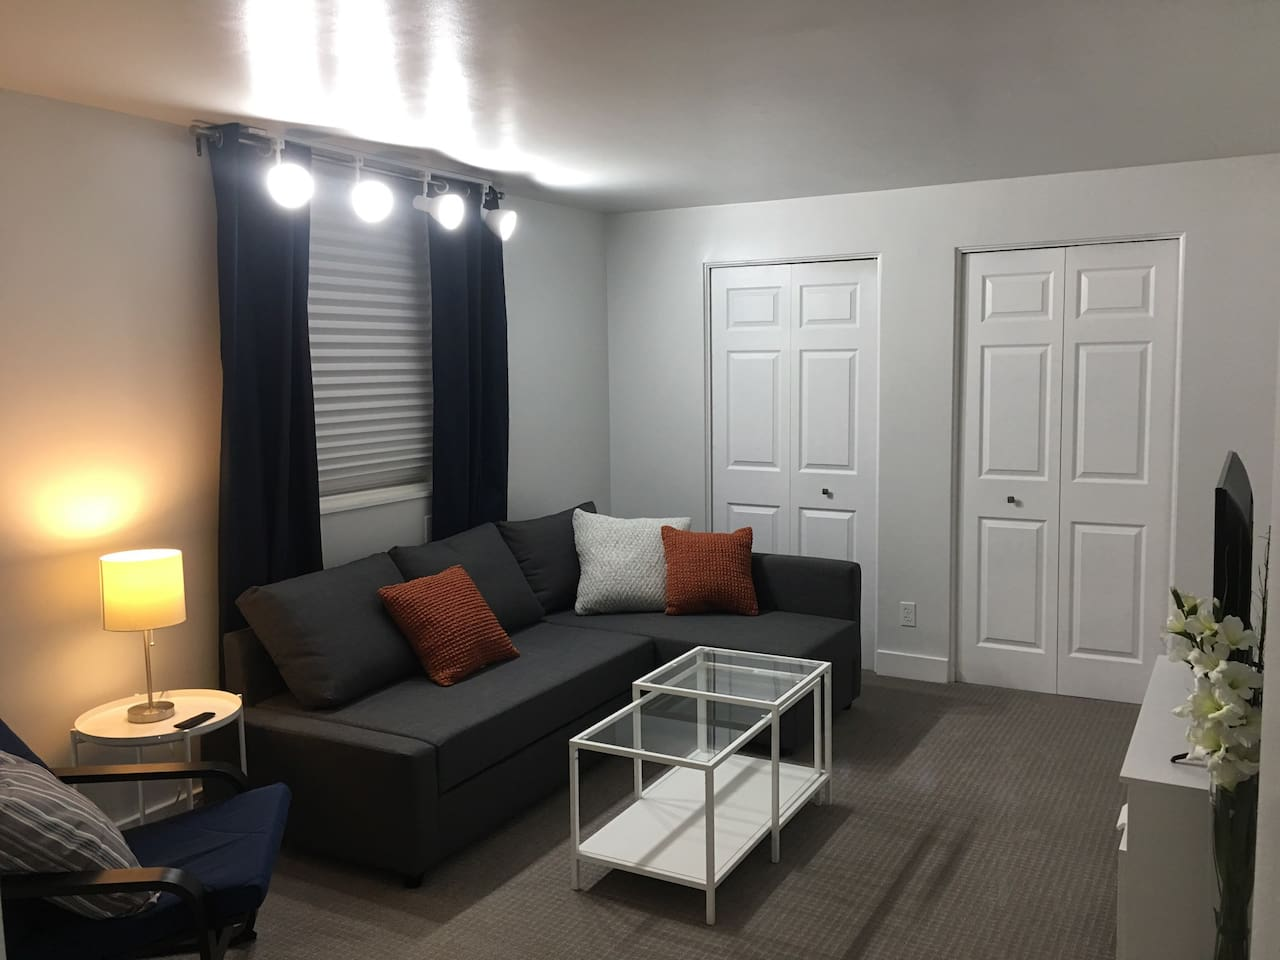 Comfy livingroom with sleeper sofa for 2. TV, wifi, Chromecast. Two fold up twin beds in the closet.